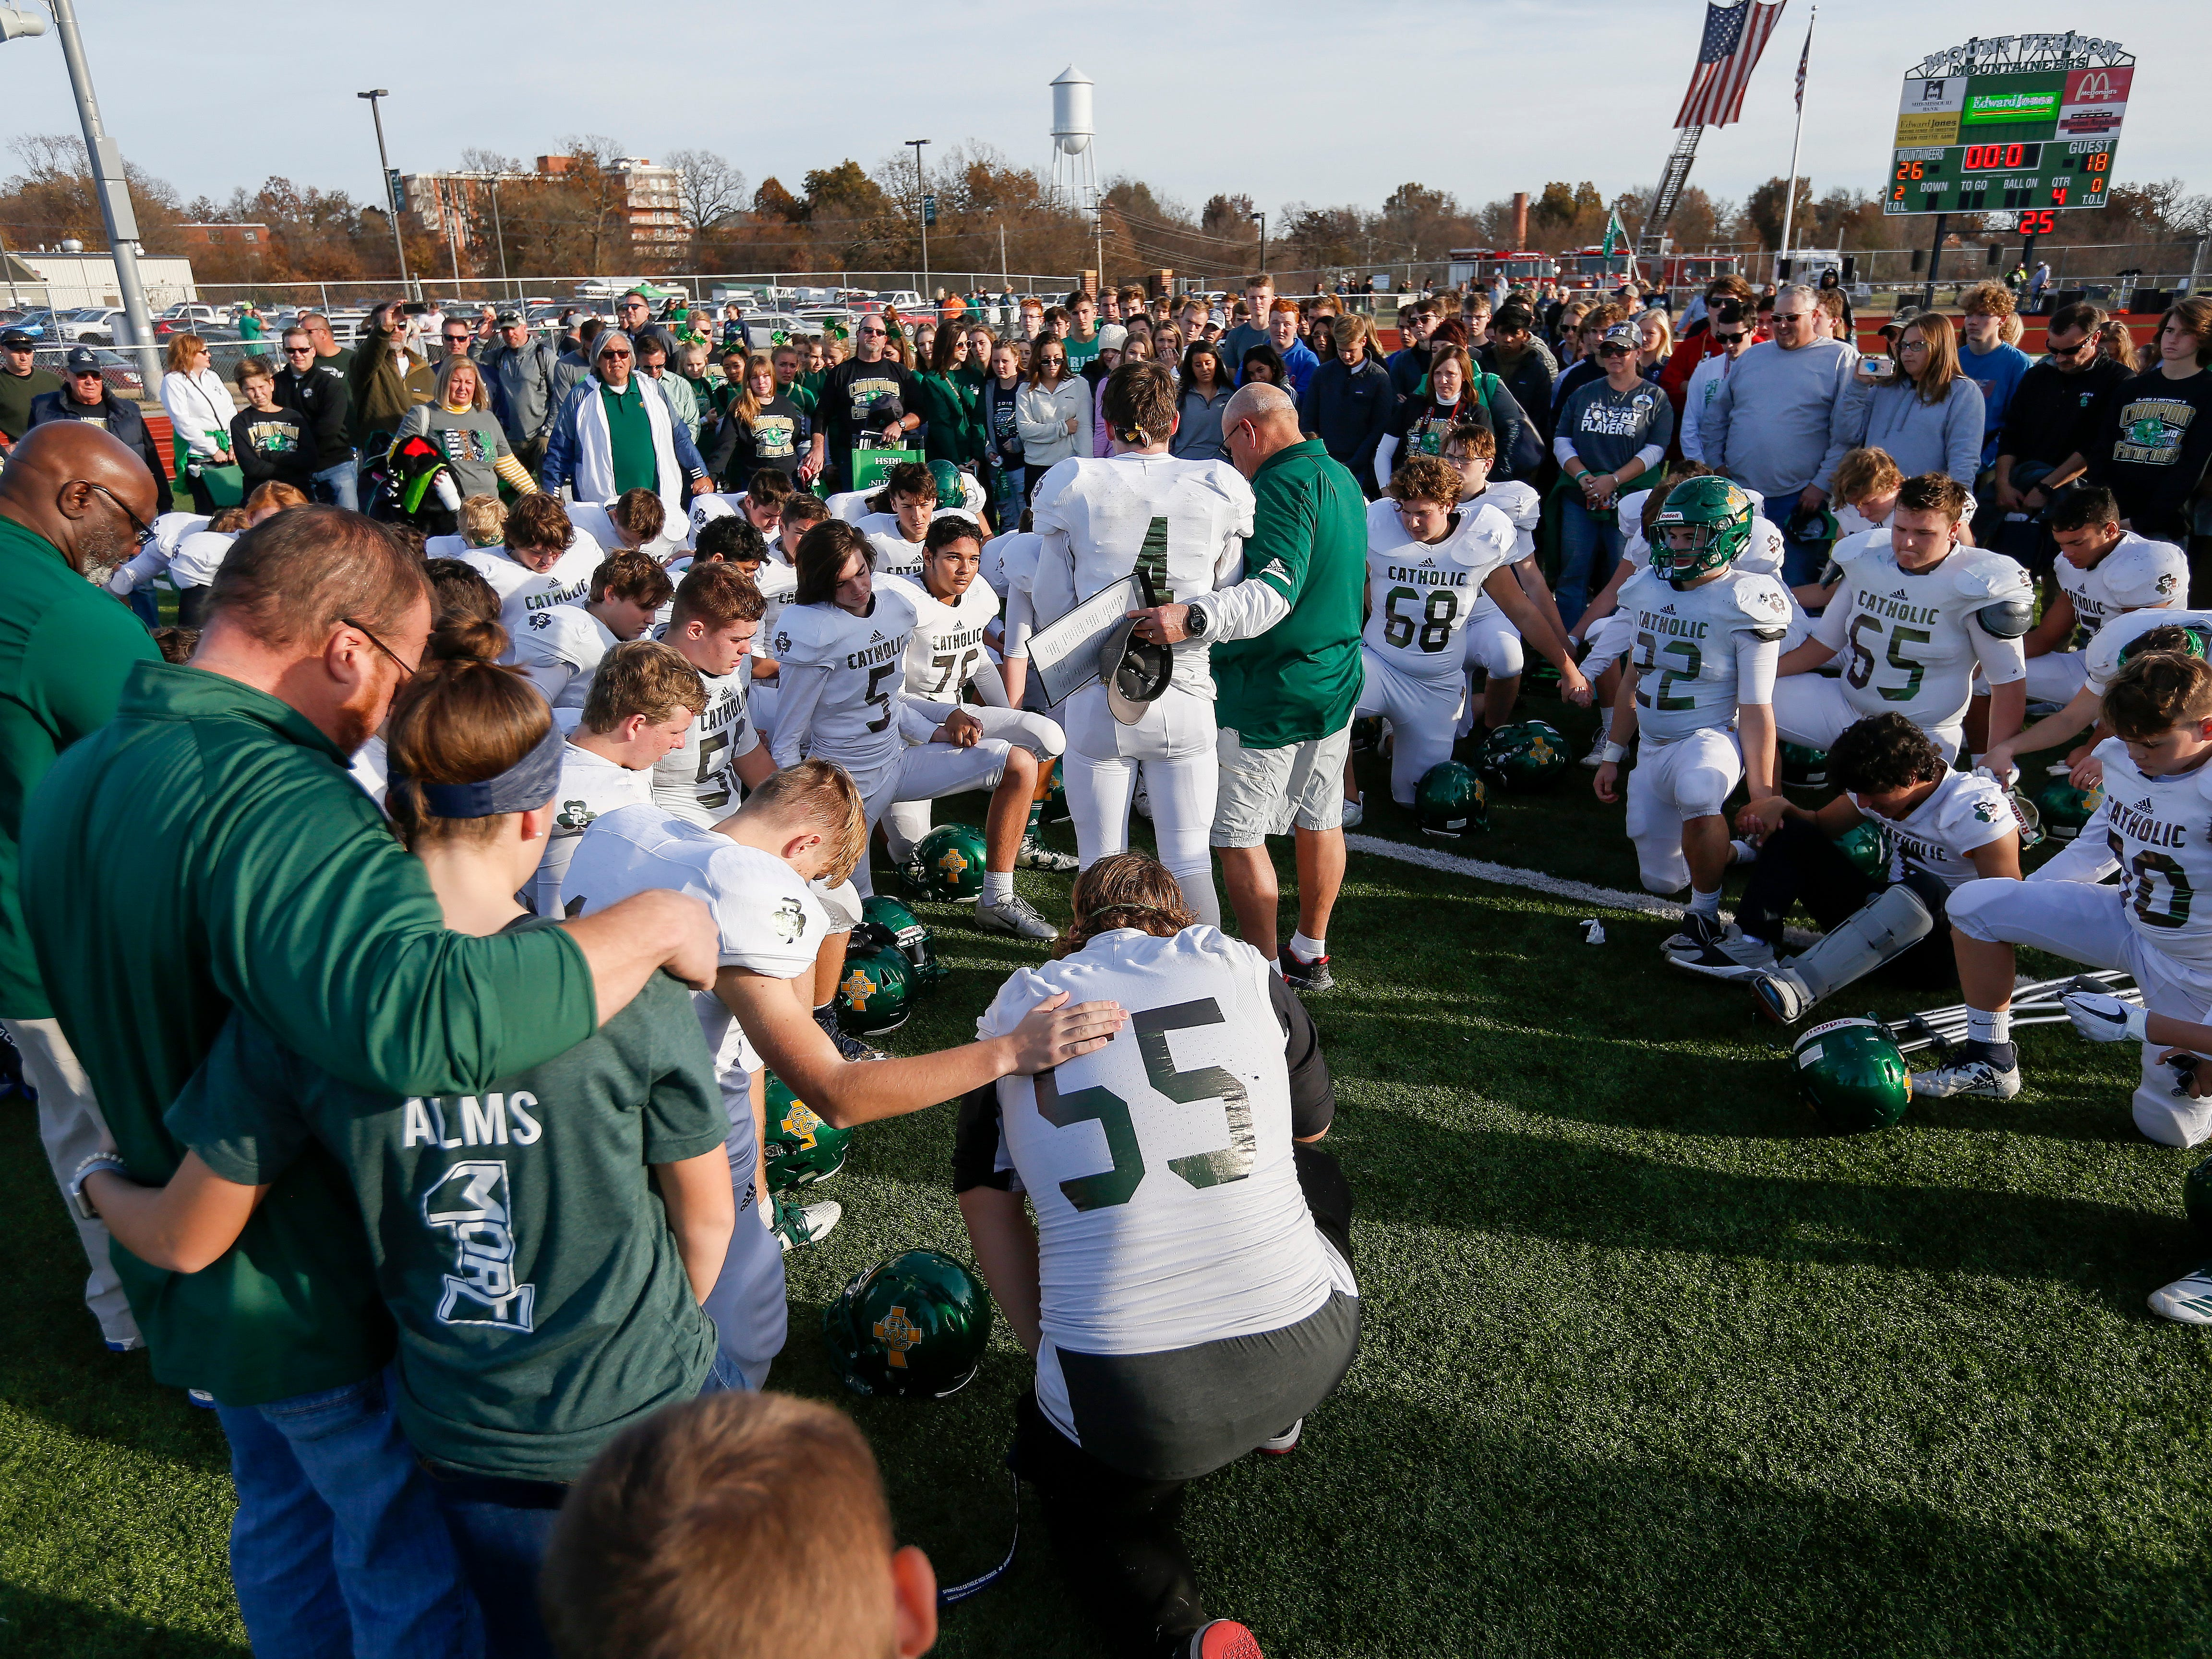 Springfield Catholic players, coaches, family and friends say a prayer after their 26-18 loss in the Class 3 Quarterfinal game against Mount Vernon at Mount Vernon High School on Saturday, Nov. 17, 2018.